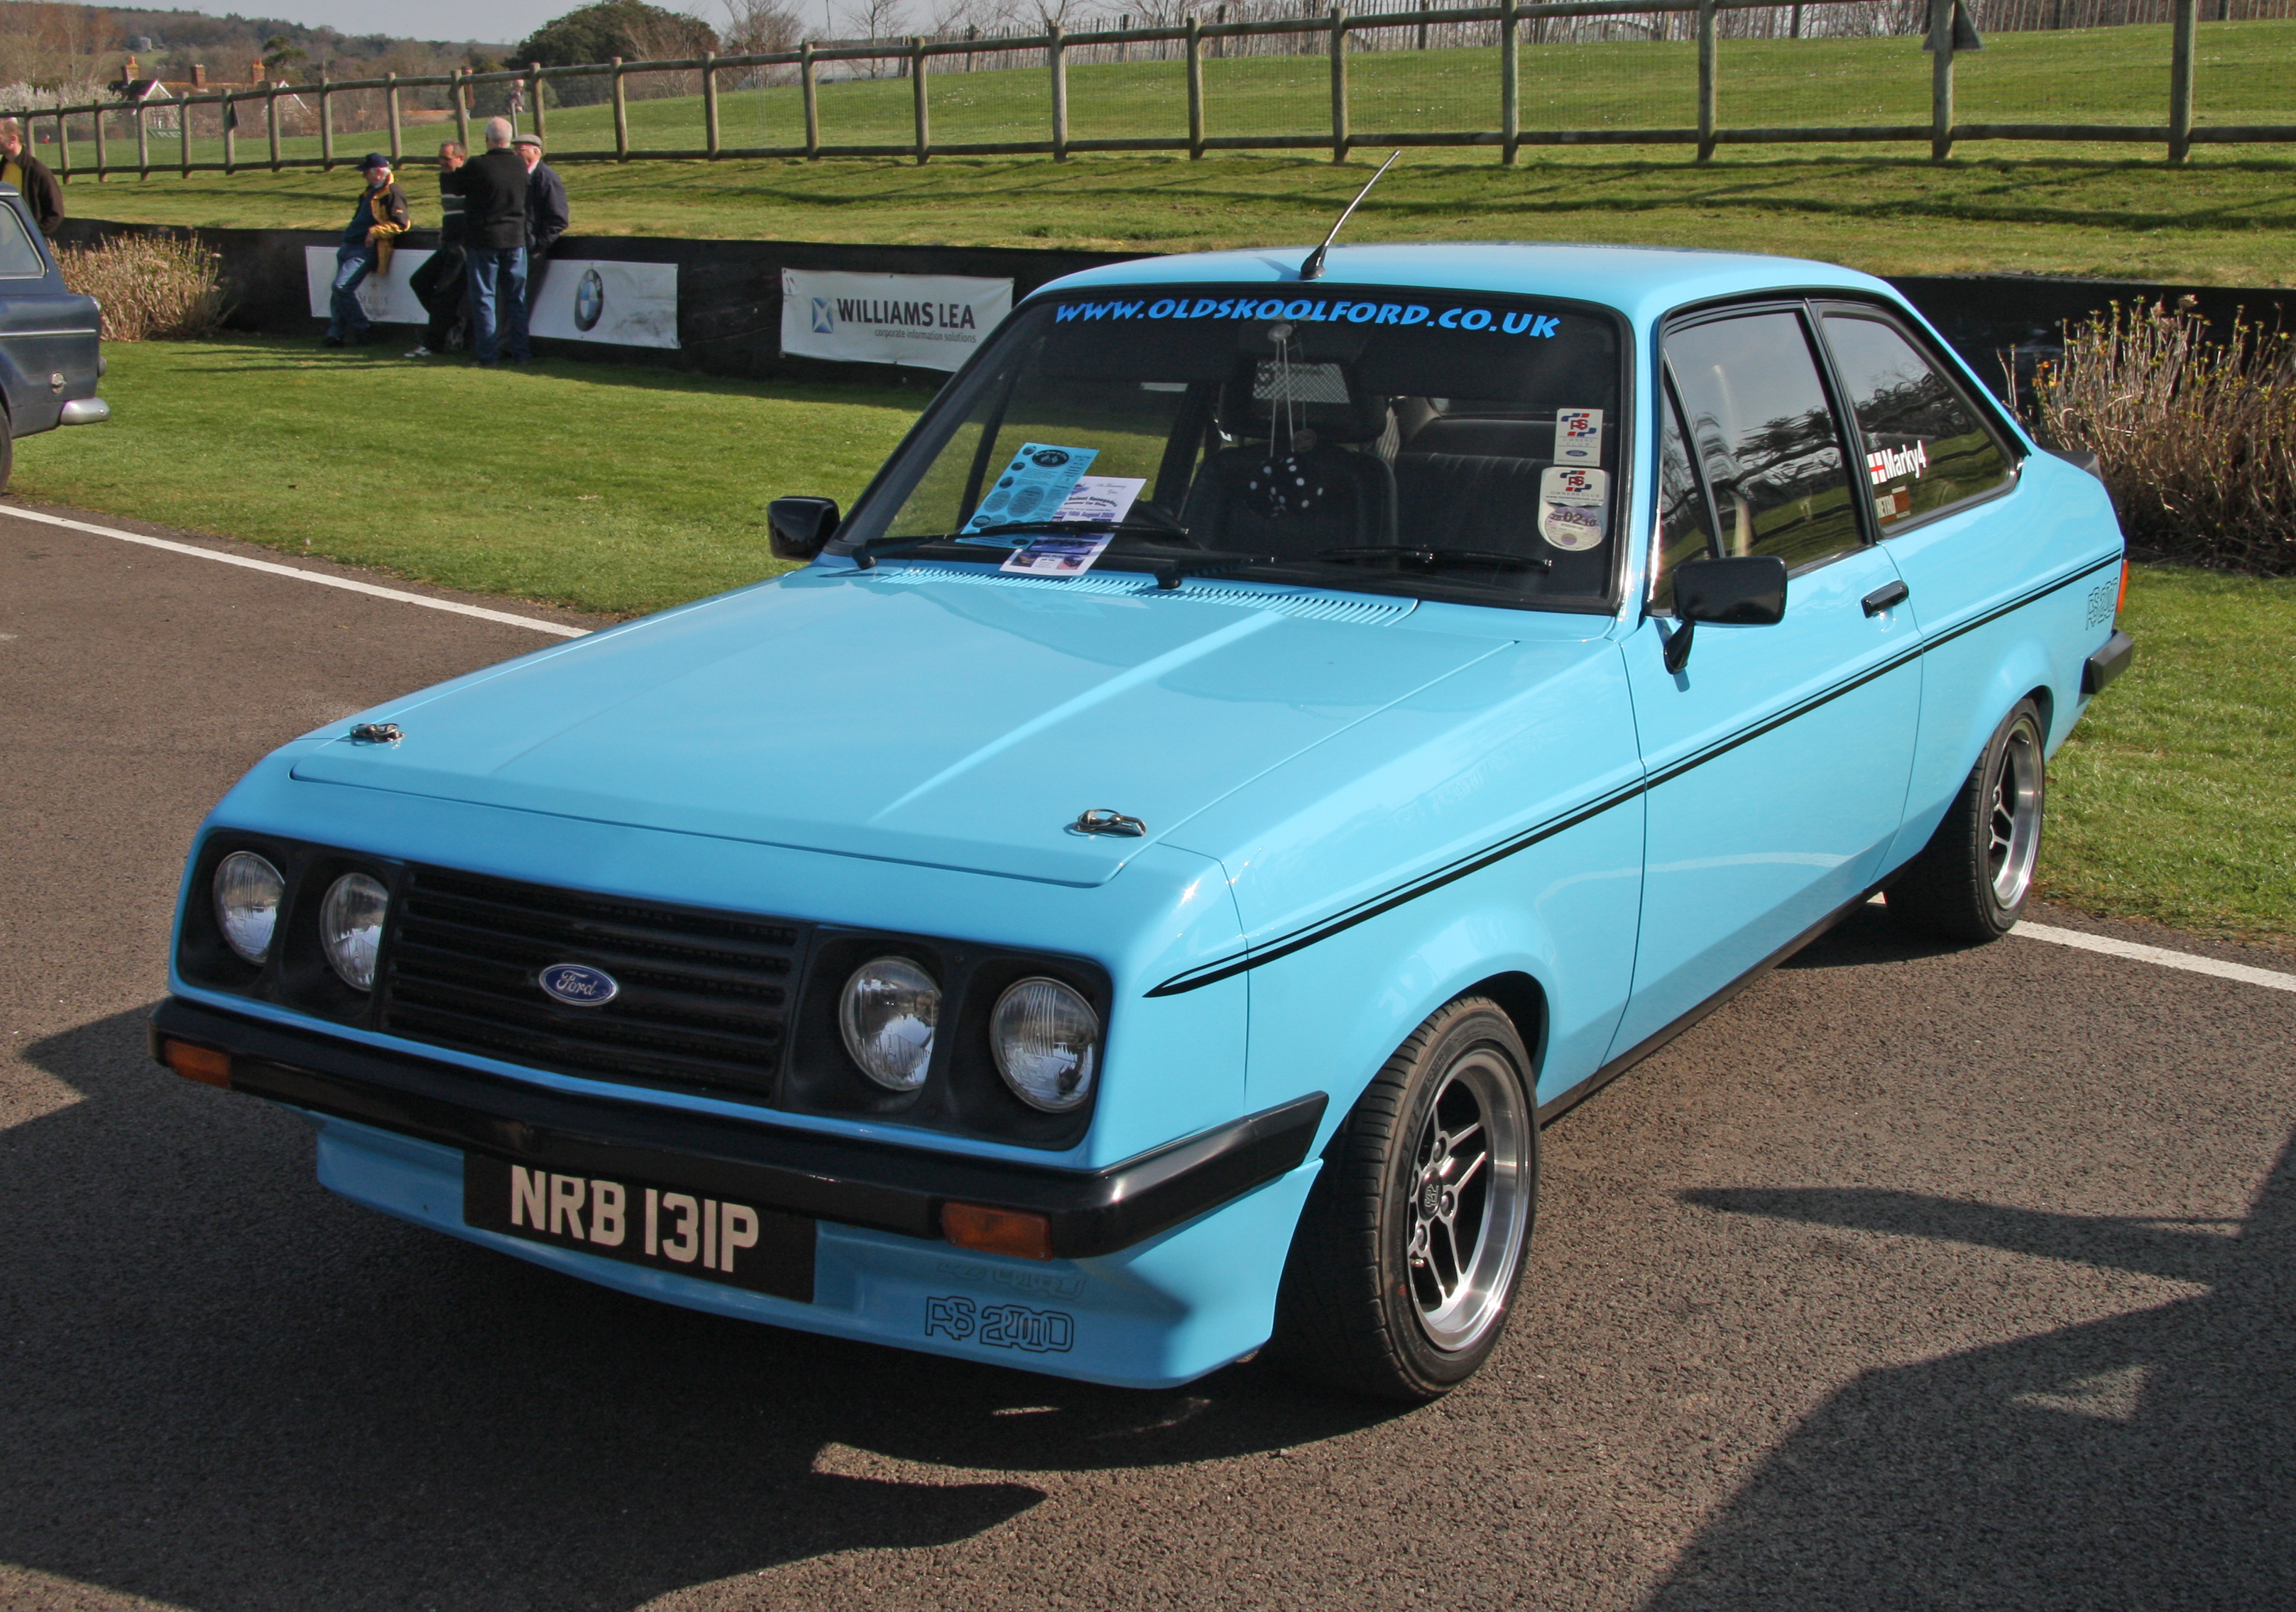 Ford Escort RS 2000 | Cars | Pinterest | Ford escort, Ford and Cars